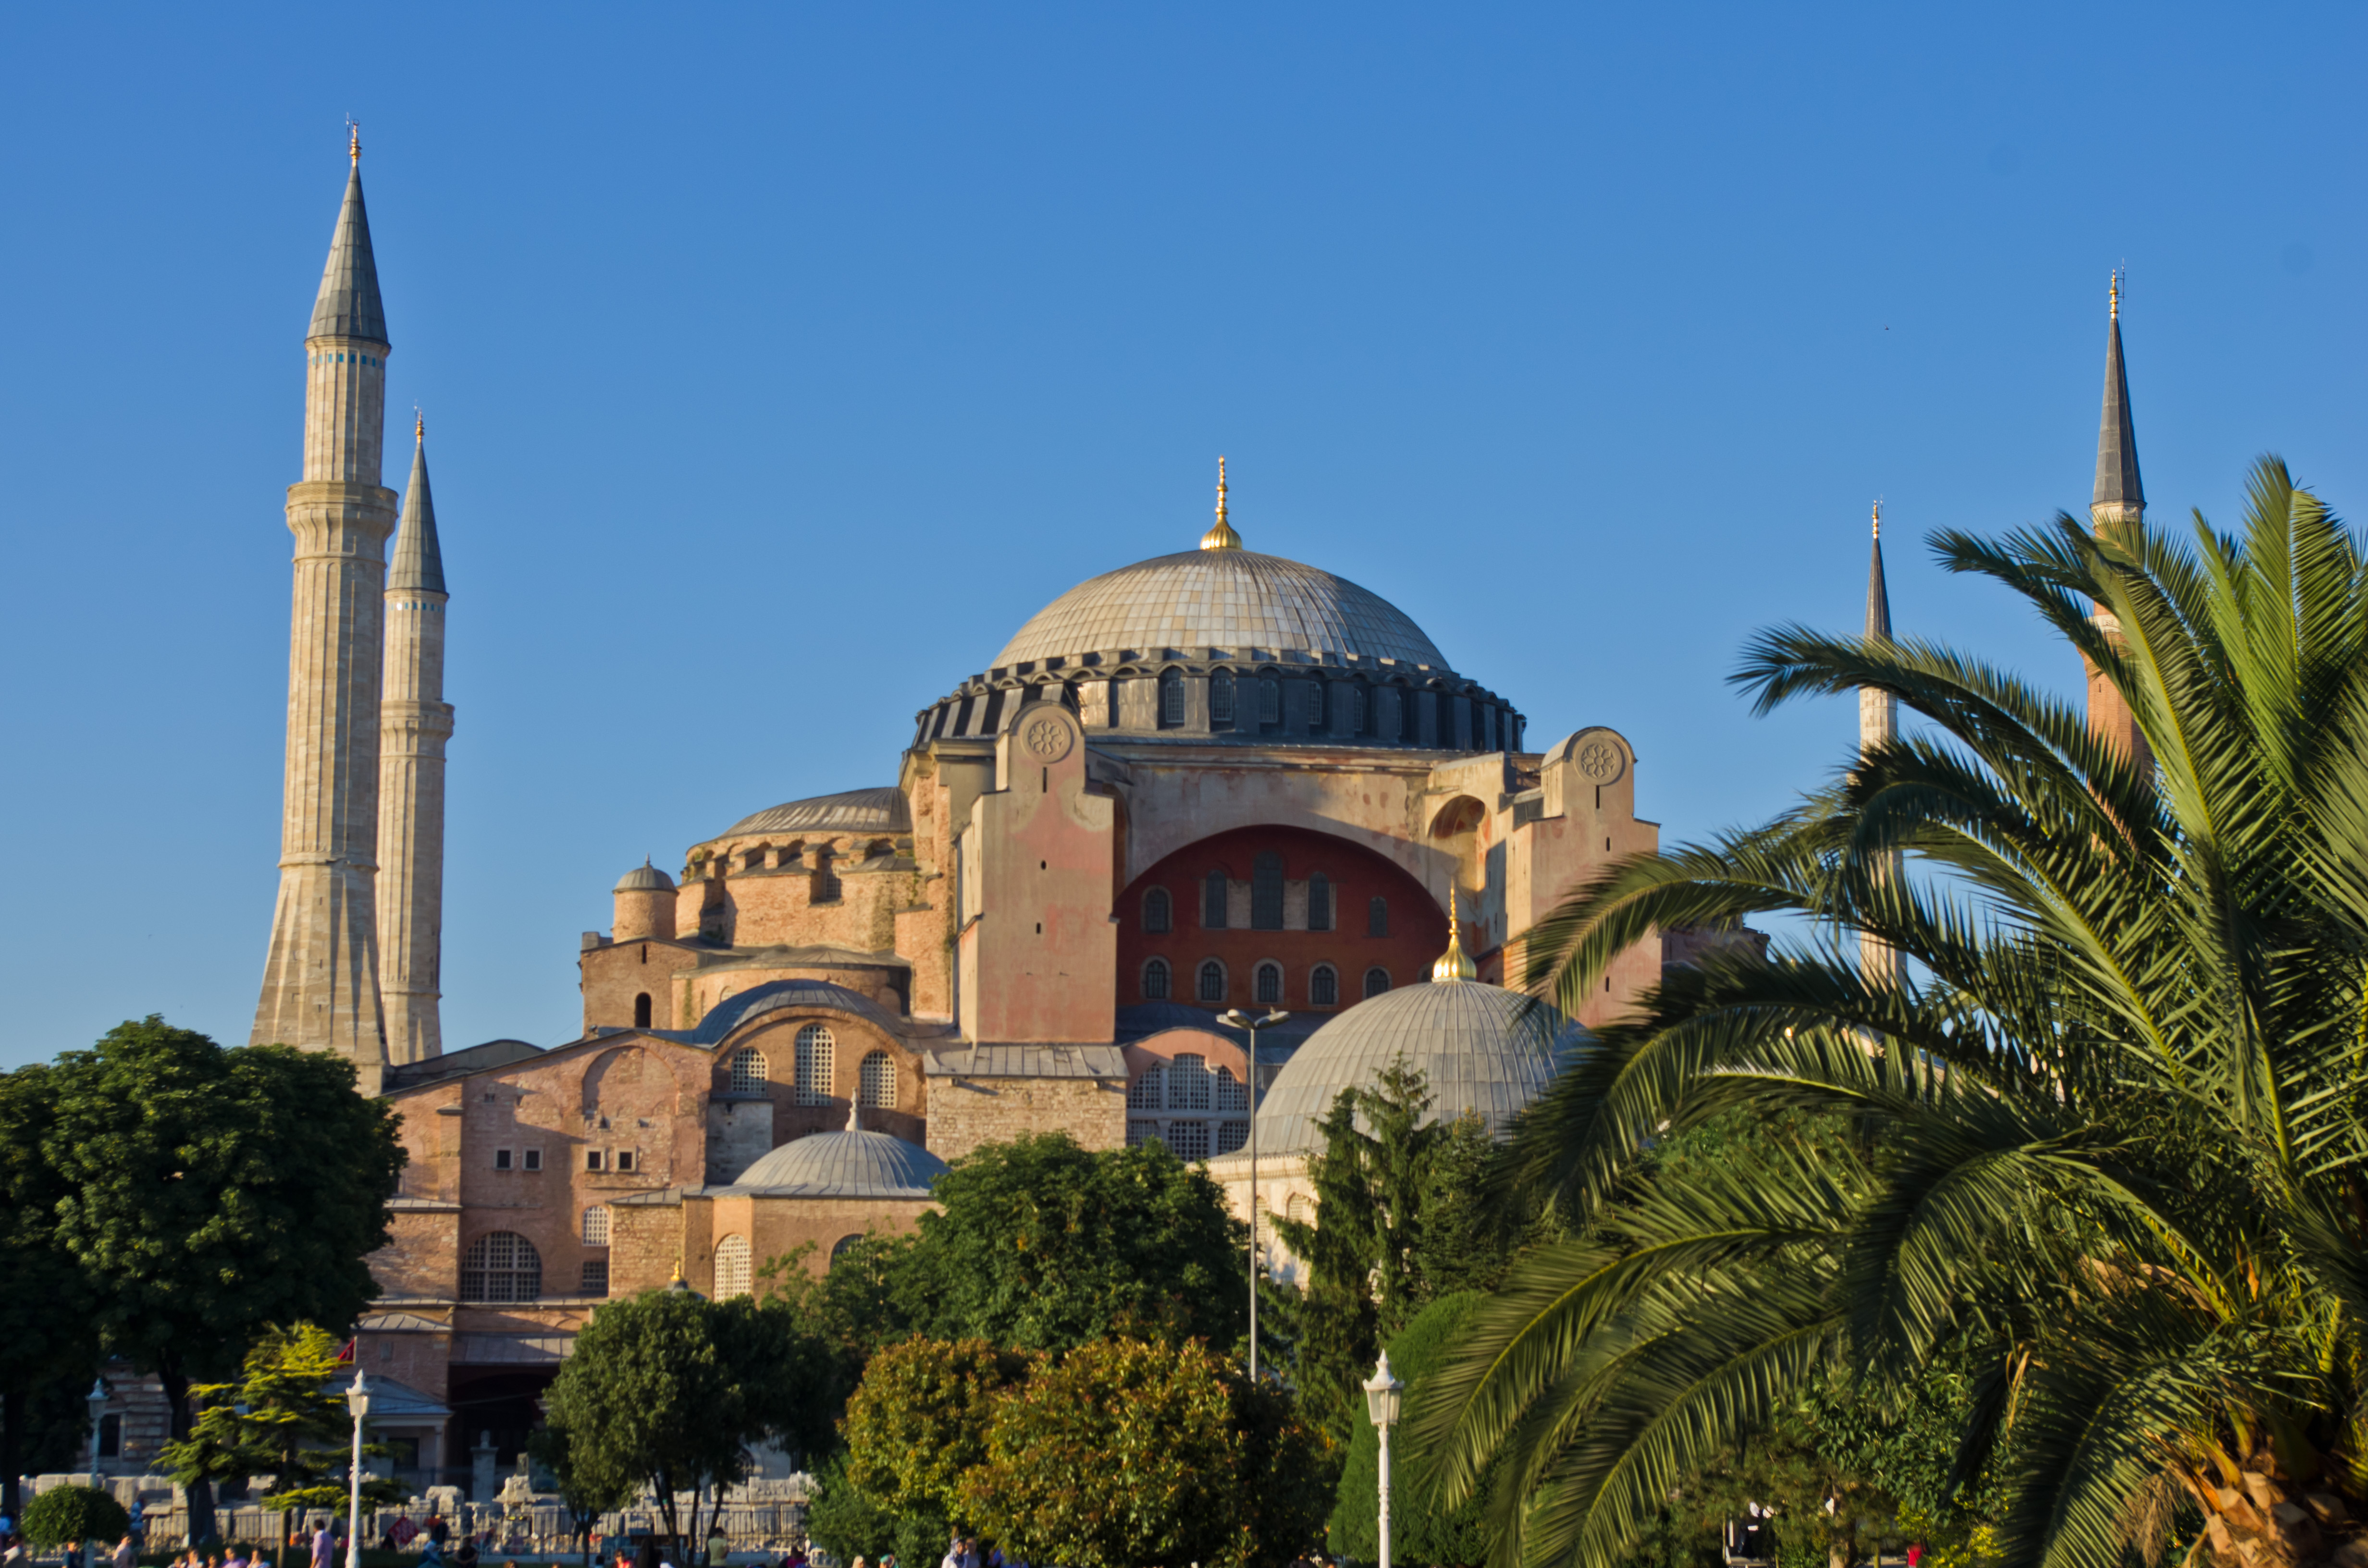 The Byzantine Empire | Anti-Social Studies: A History Podcast + Blog By Antoine Taveneaux [CC BY-SA 3.0 (https://creativecommons.org/licenses/by-sa/3.0)], from Wikimedia Commons